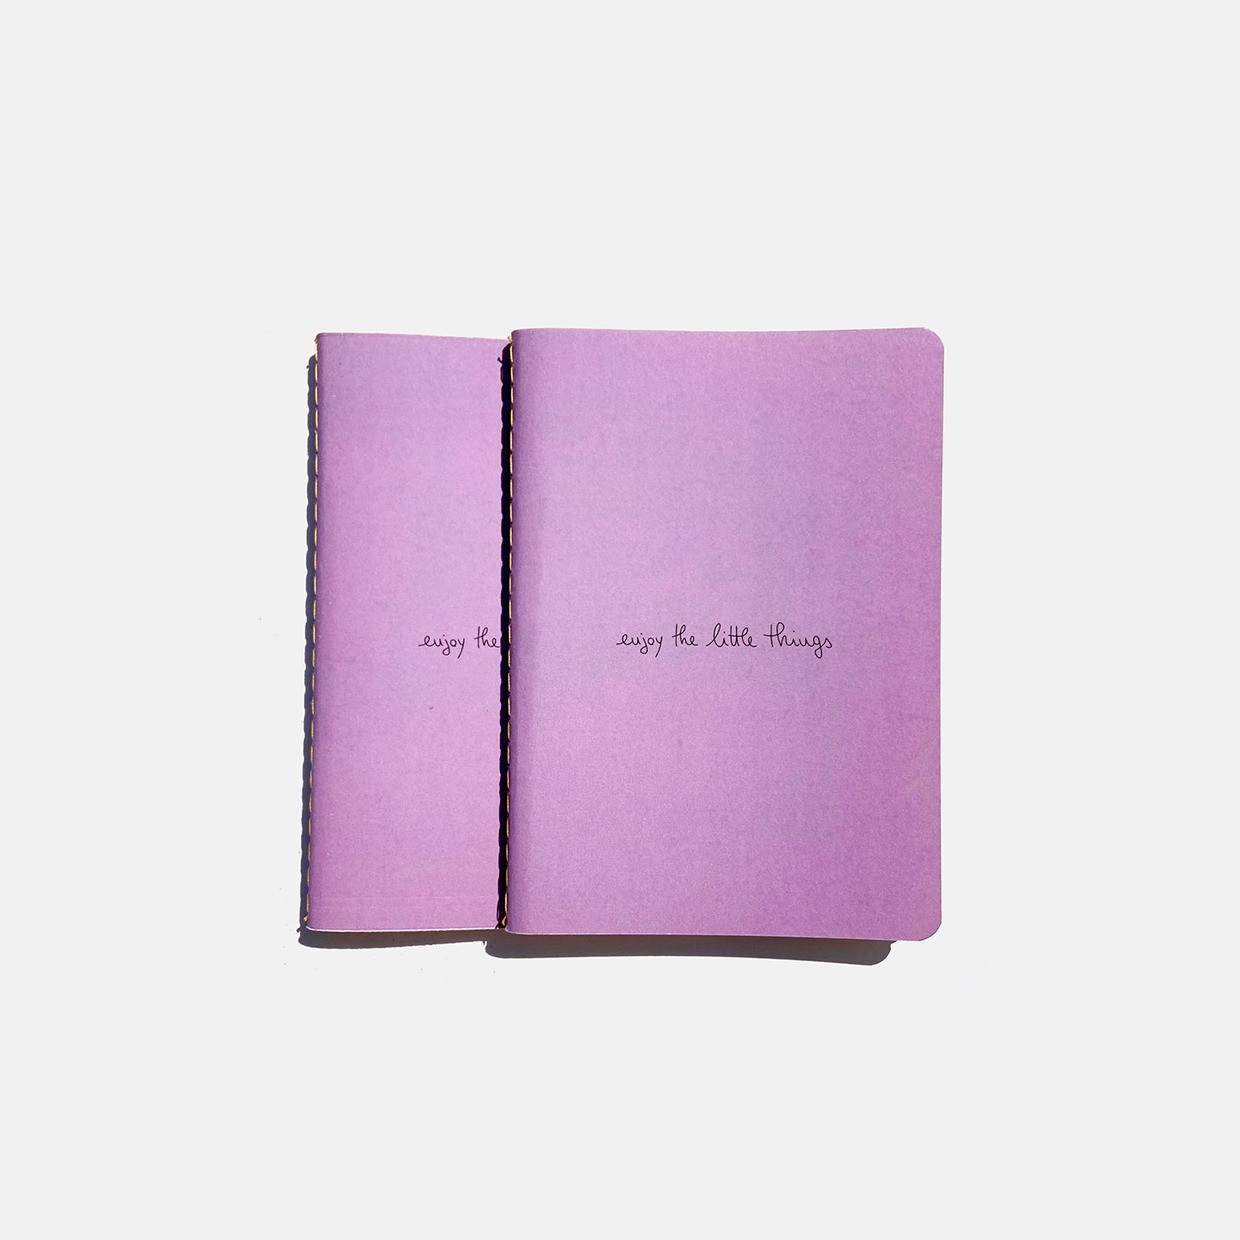 The Enjoy notebook - 2 taccuini